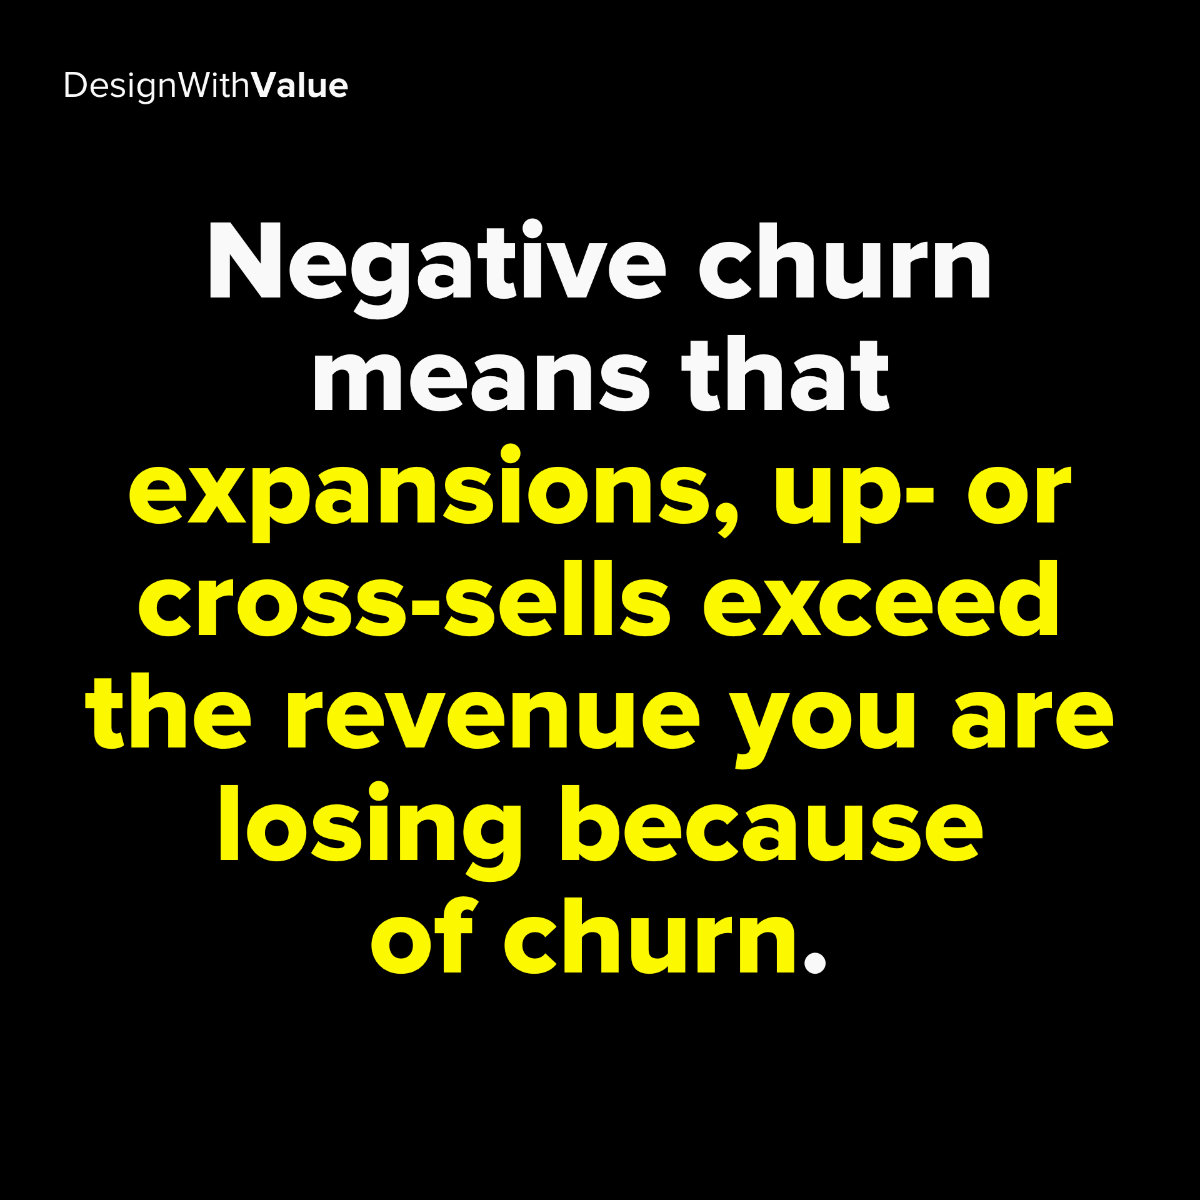 Negative churn means that expansions, up- or cross-sells exceed the revenue you are losing because of churn